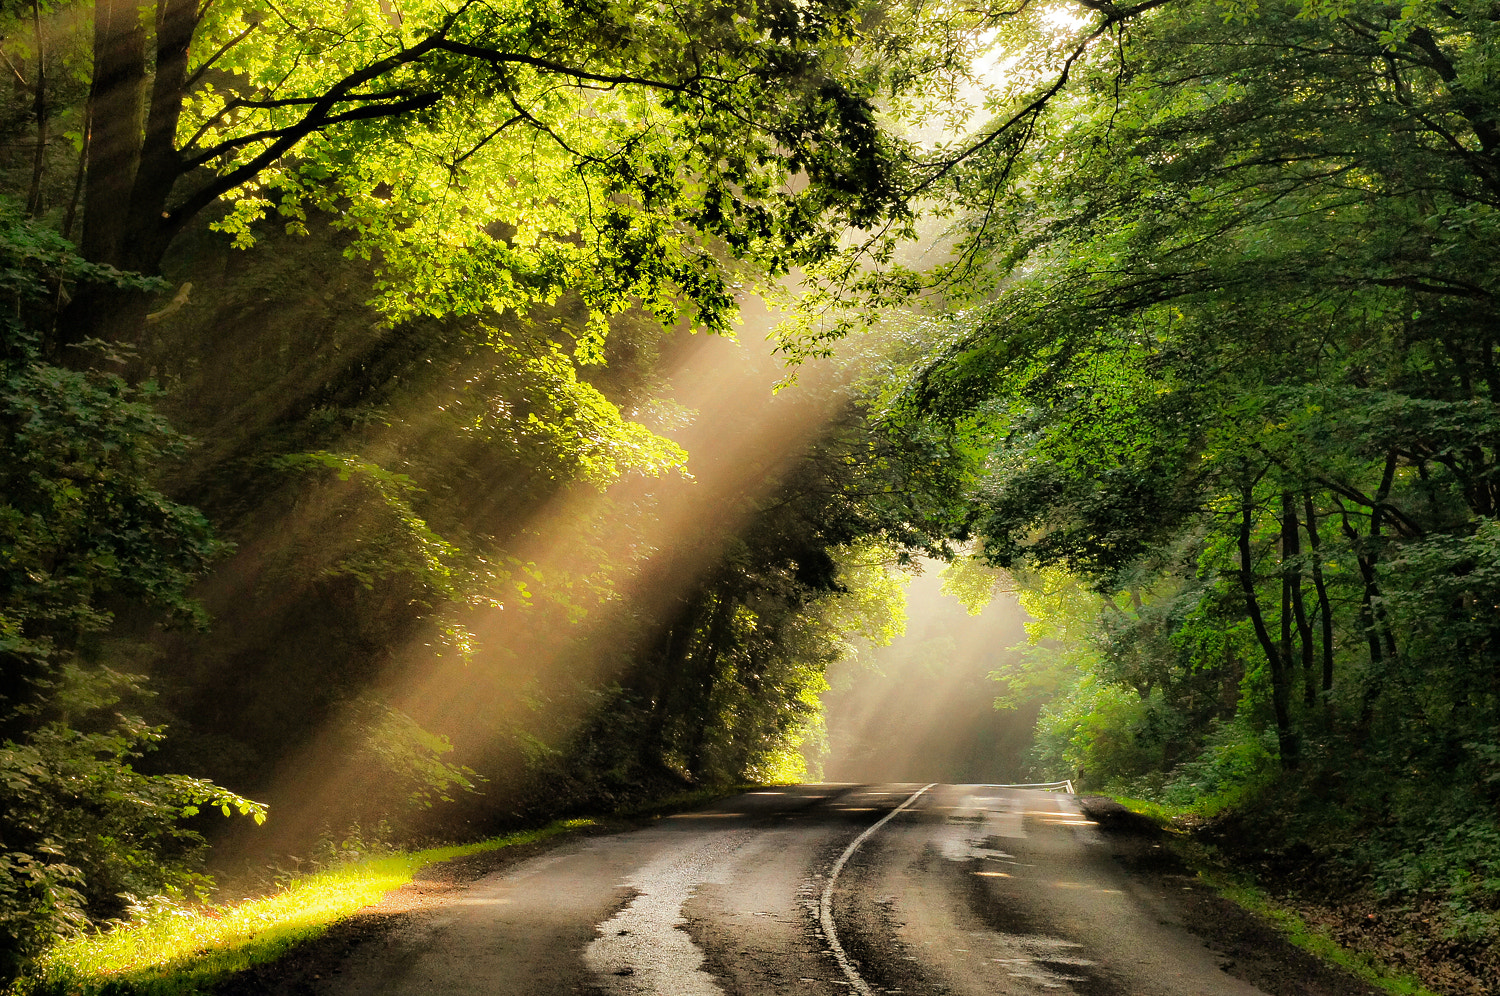 Photograph lights in on the road by Andy 58 on 500px